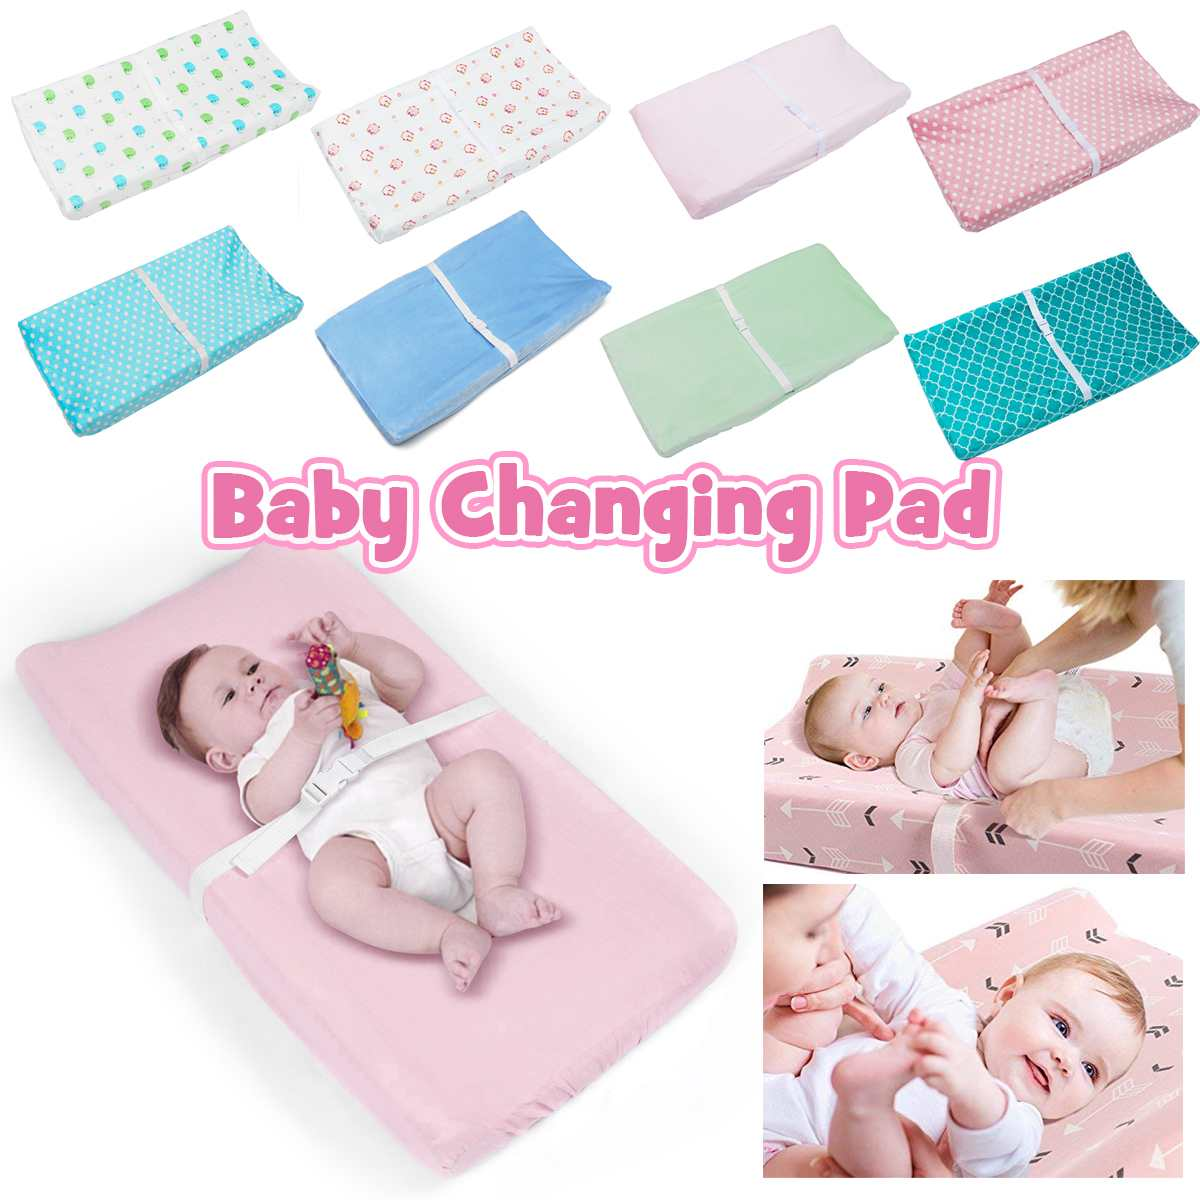 Diaper Changing Pad Cover Newborns Soft Breathable Cotton Fitted Sheet For Standard Changing Table Pads Bassinet Sheet